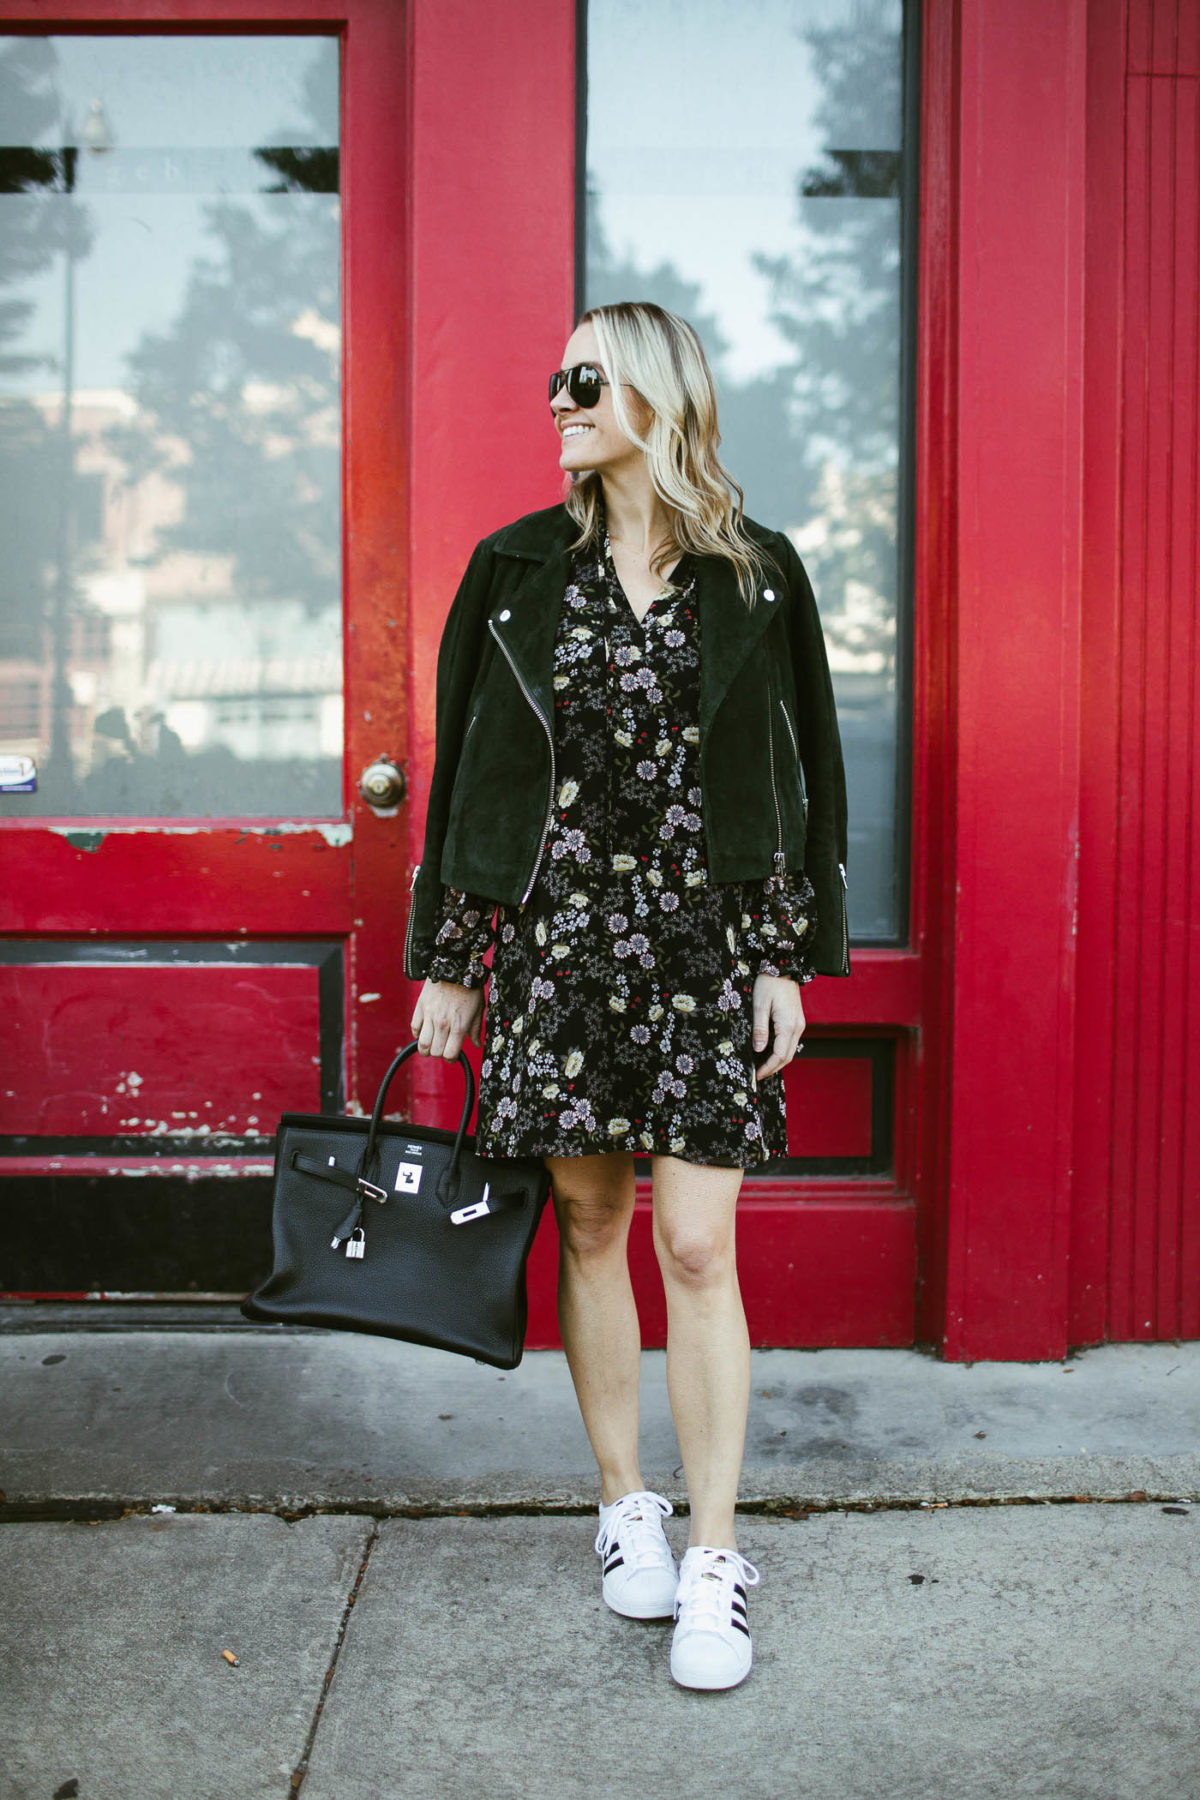 When you pair a floral shift dress with some sporty Adidas' and a leather jacket you get an outfit perfect for an urban setting.